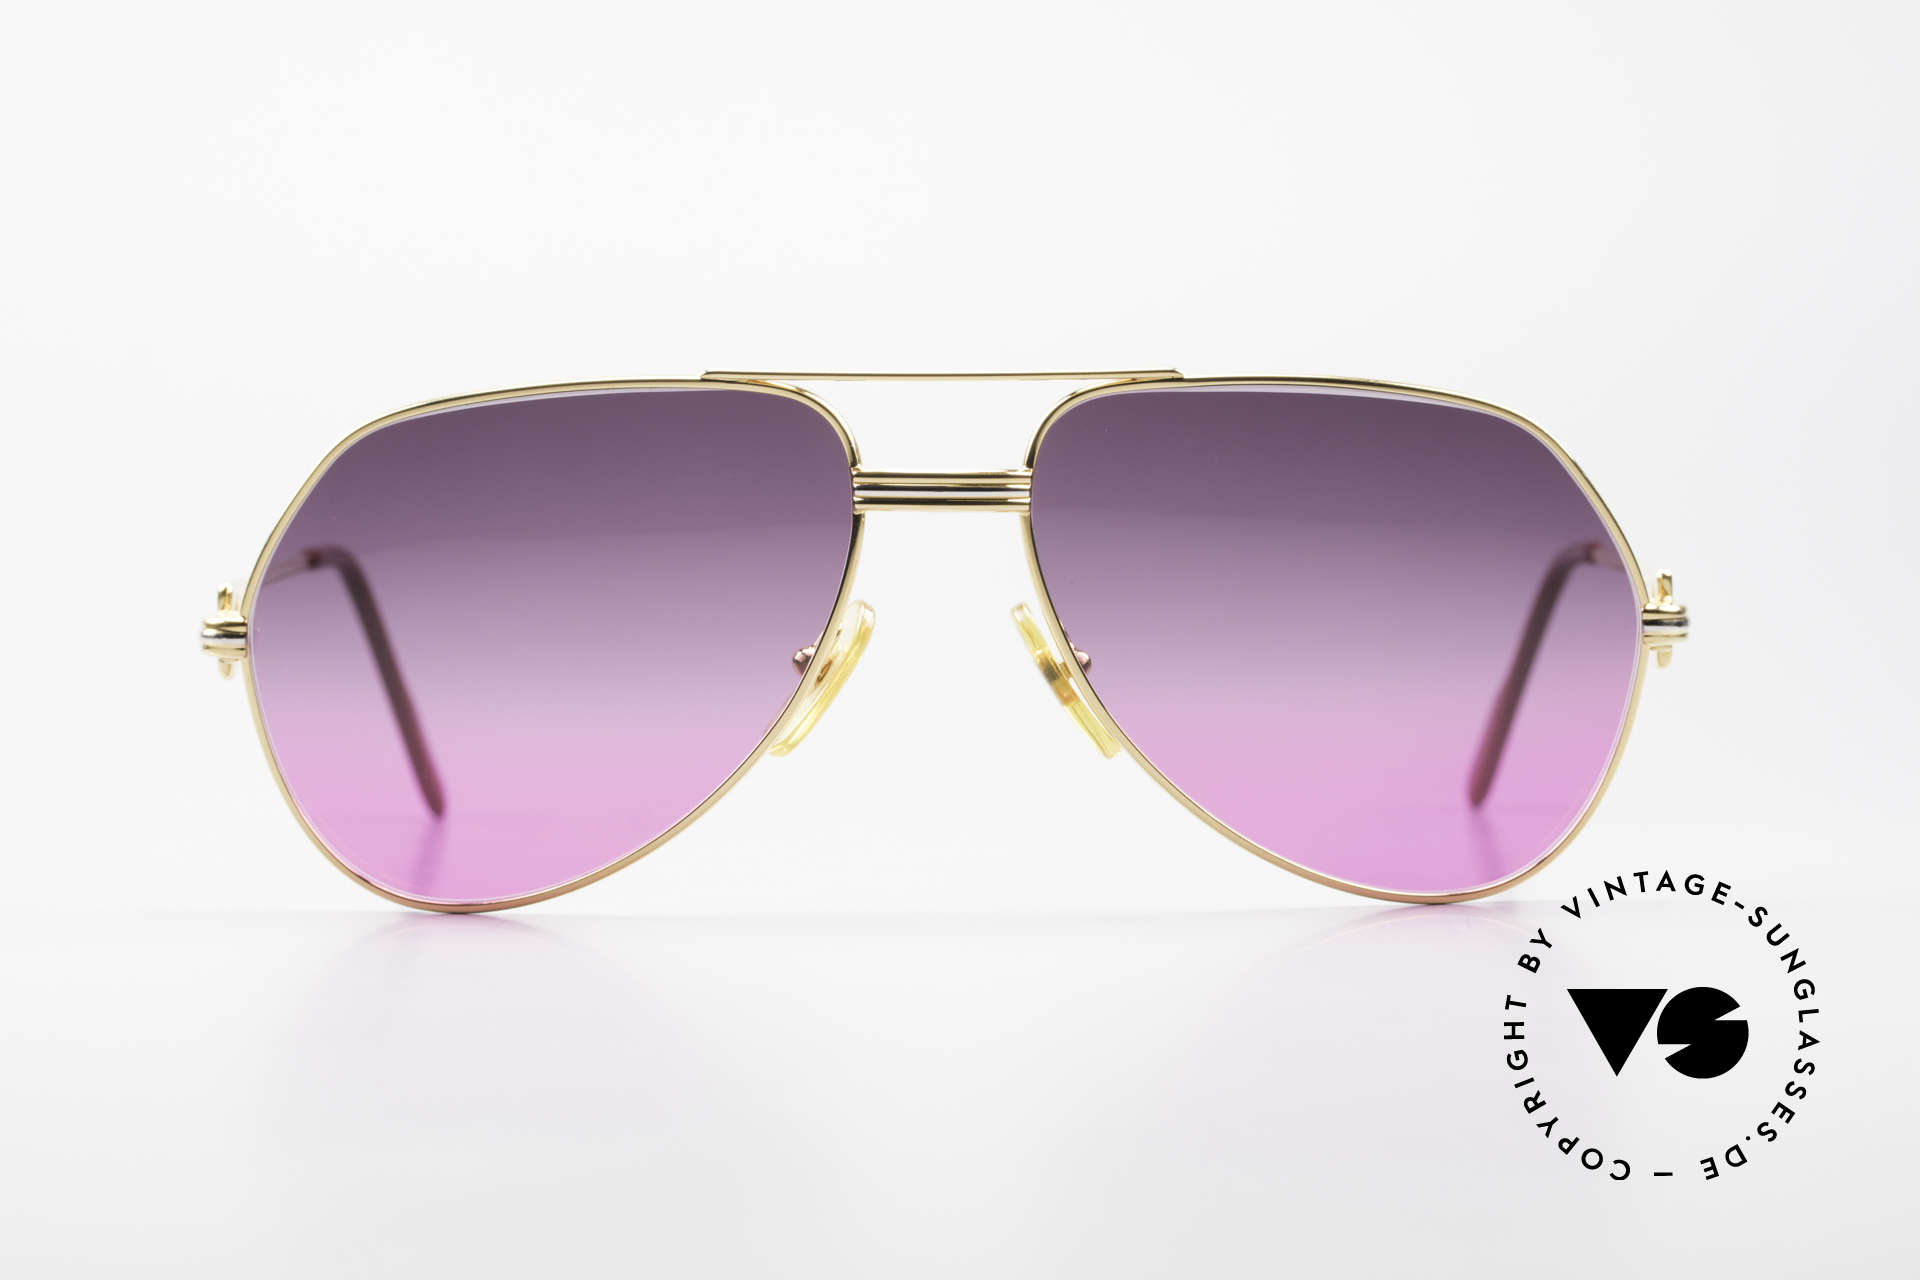 """Cartier Vendome LC - M 80's Sunglasses Aviator Luxury, mod. """"Vendome"""" was launched in 1983 & made till 1997, Made for Men and Women"""